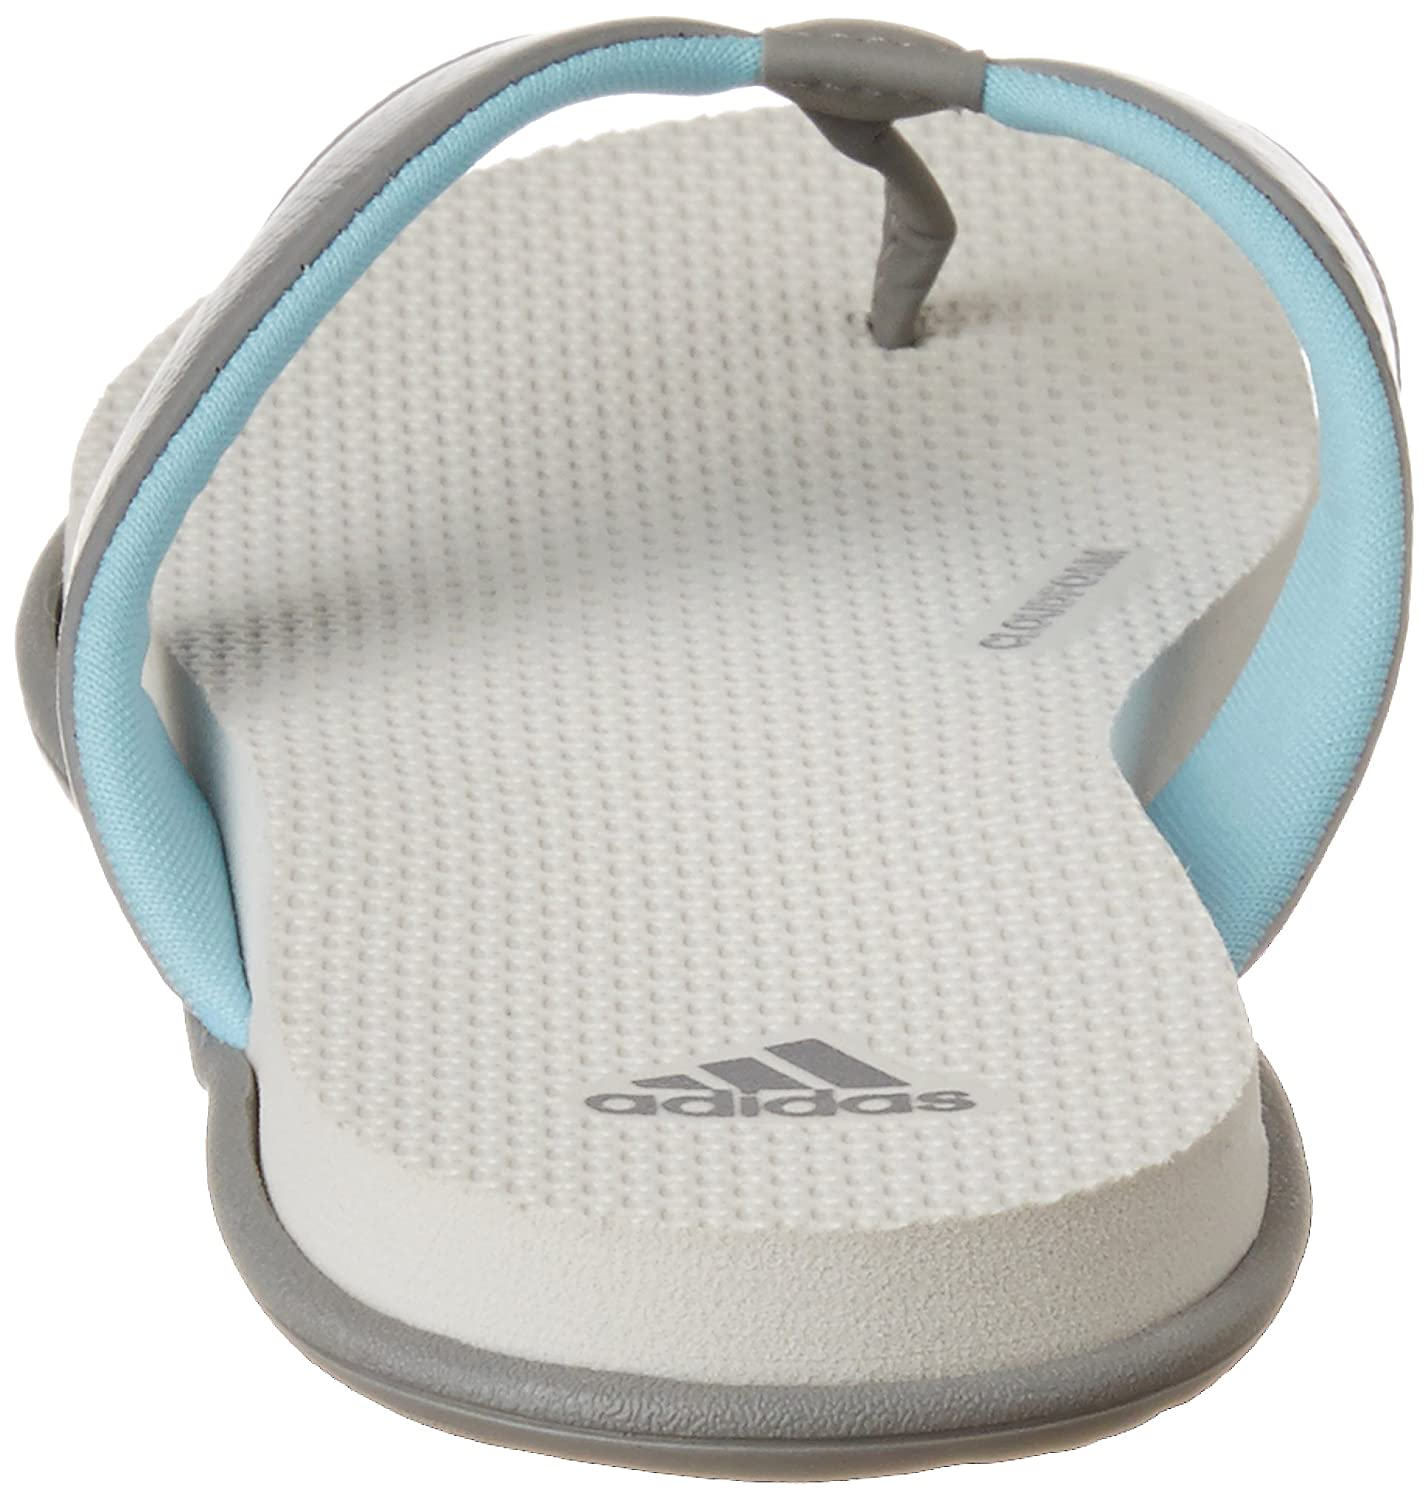 8098dda9ace0 Adidas Women s Cloudfoam One Y W Grethr Msilve Greone House Slippers - 5  UK India (38 EU) (S80970)  Buy Online at Low Prices in India - Amazon.in